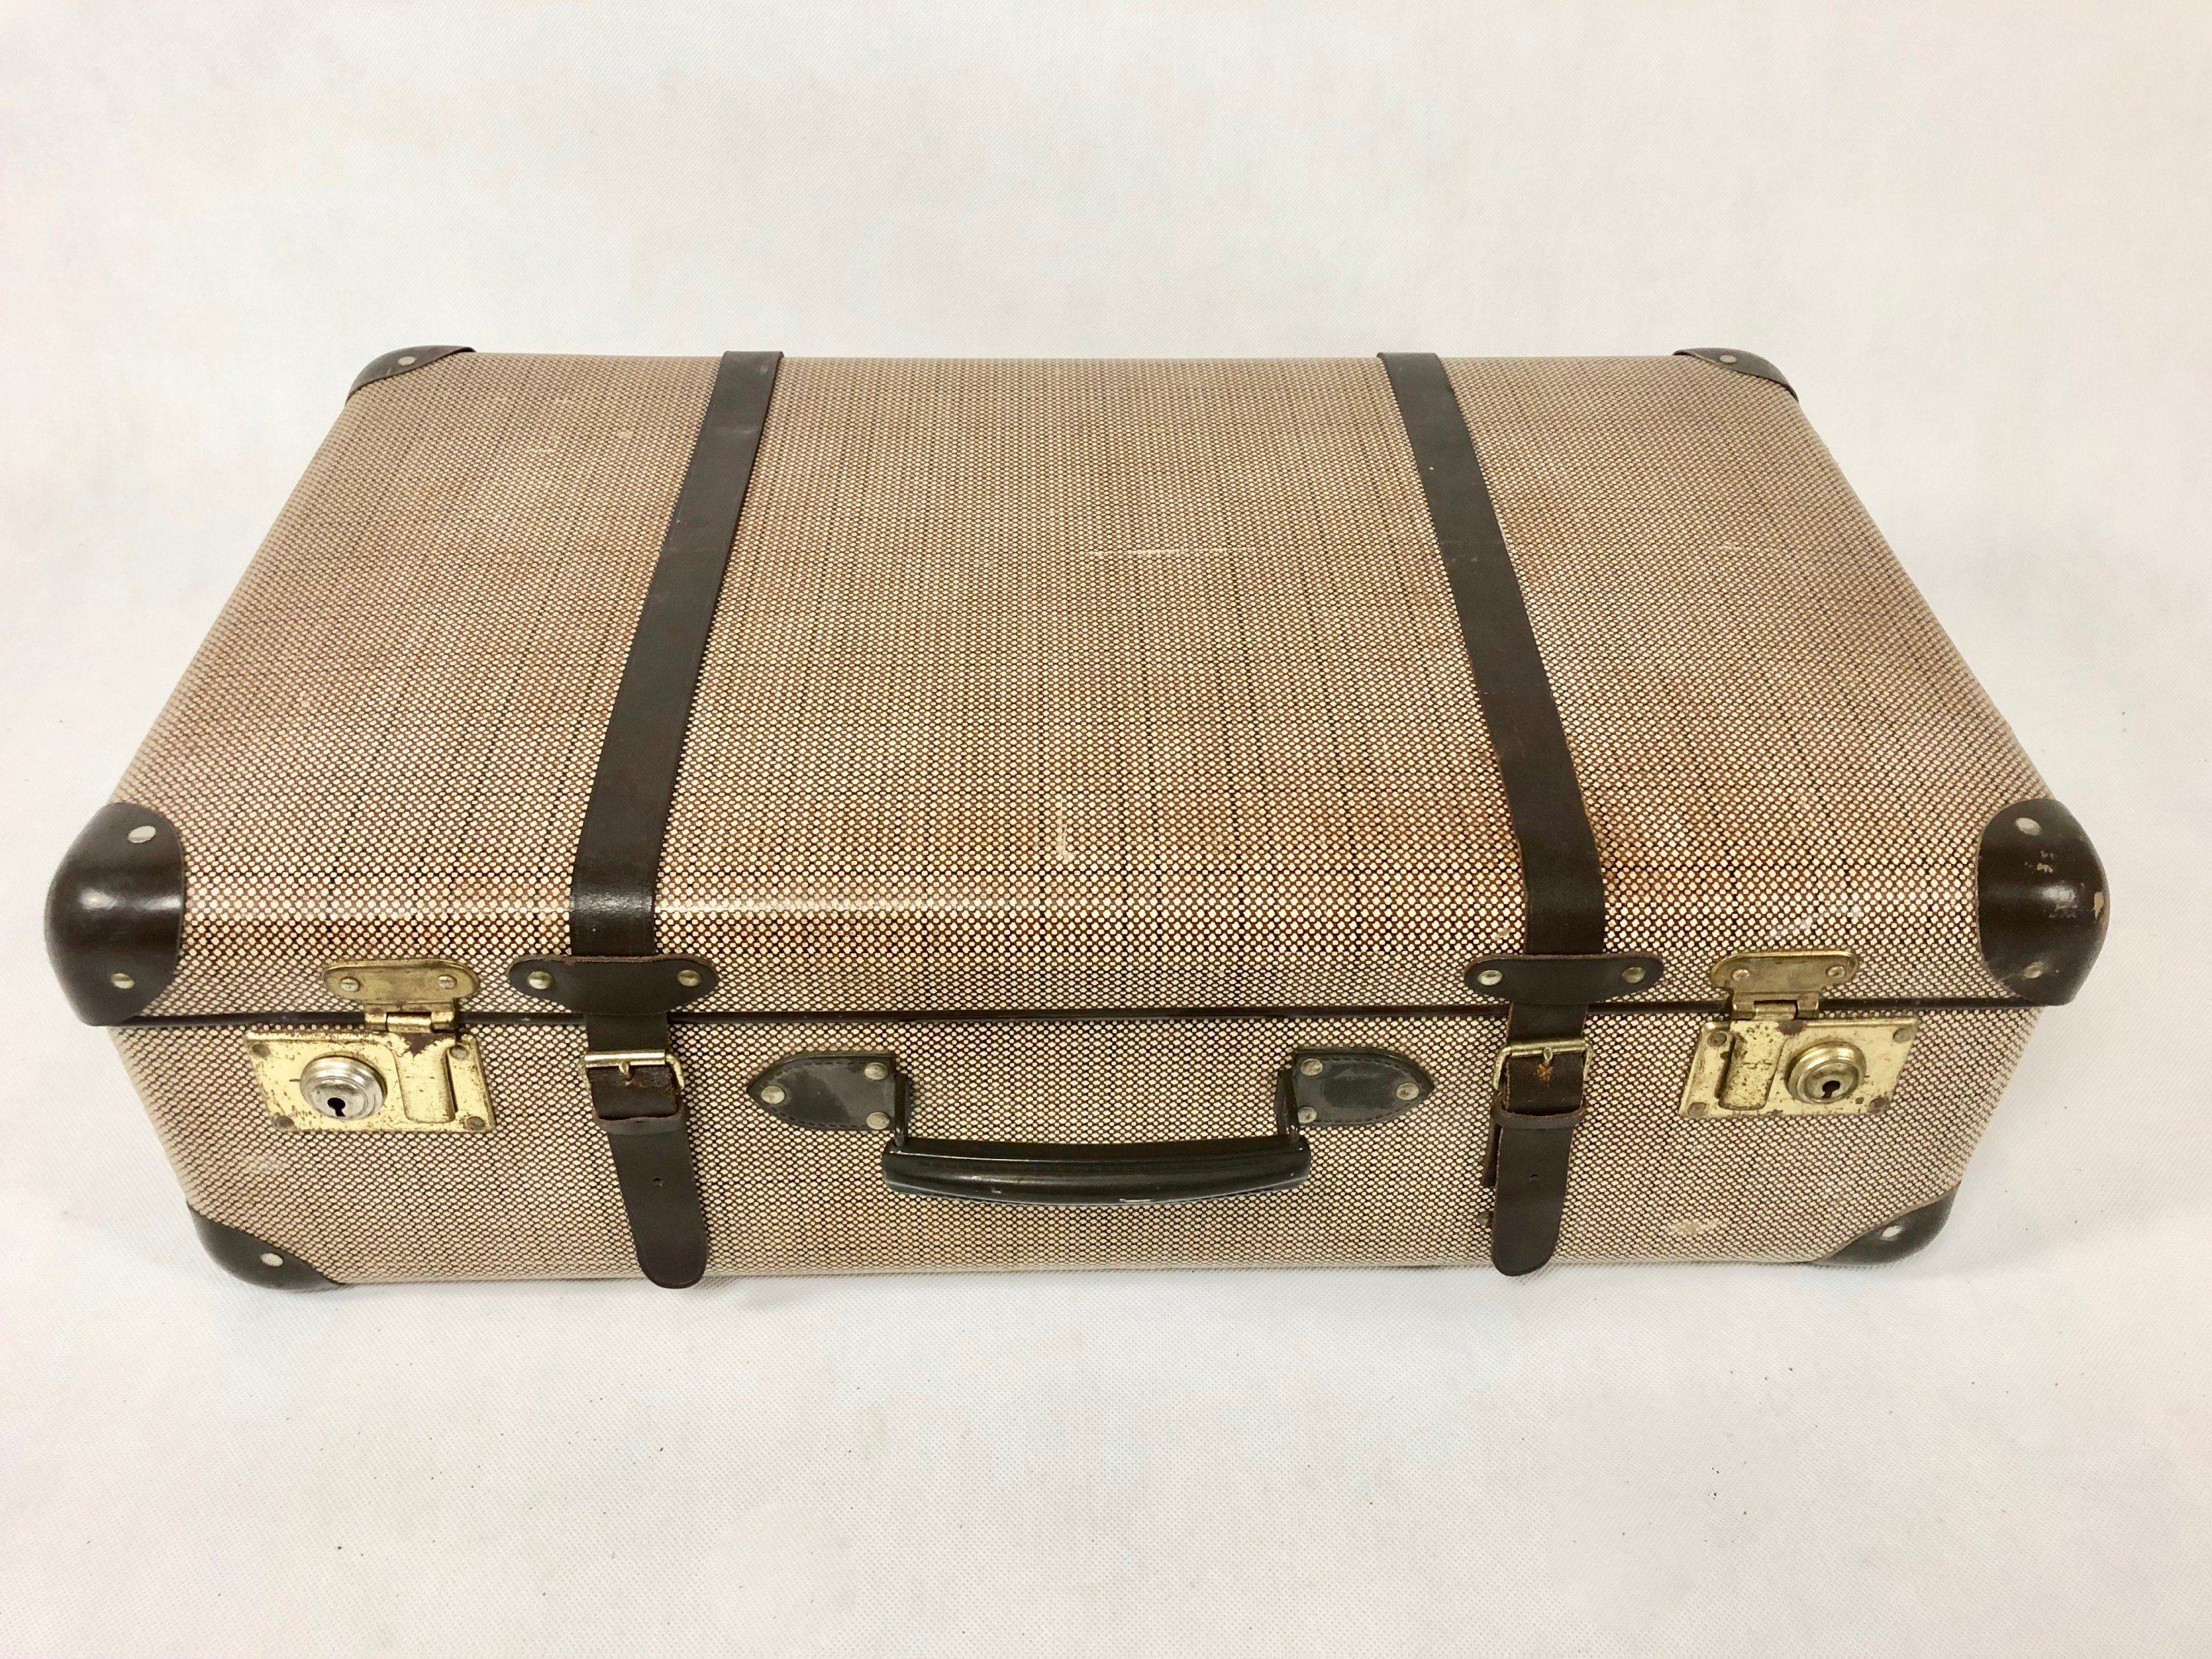 Suitcase, Germany, 1960s - 460954 - photo